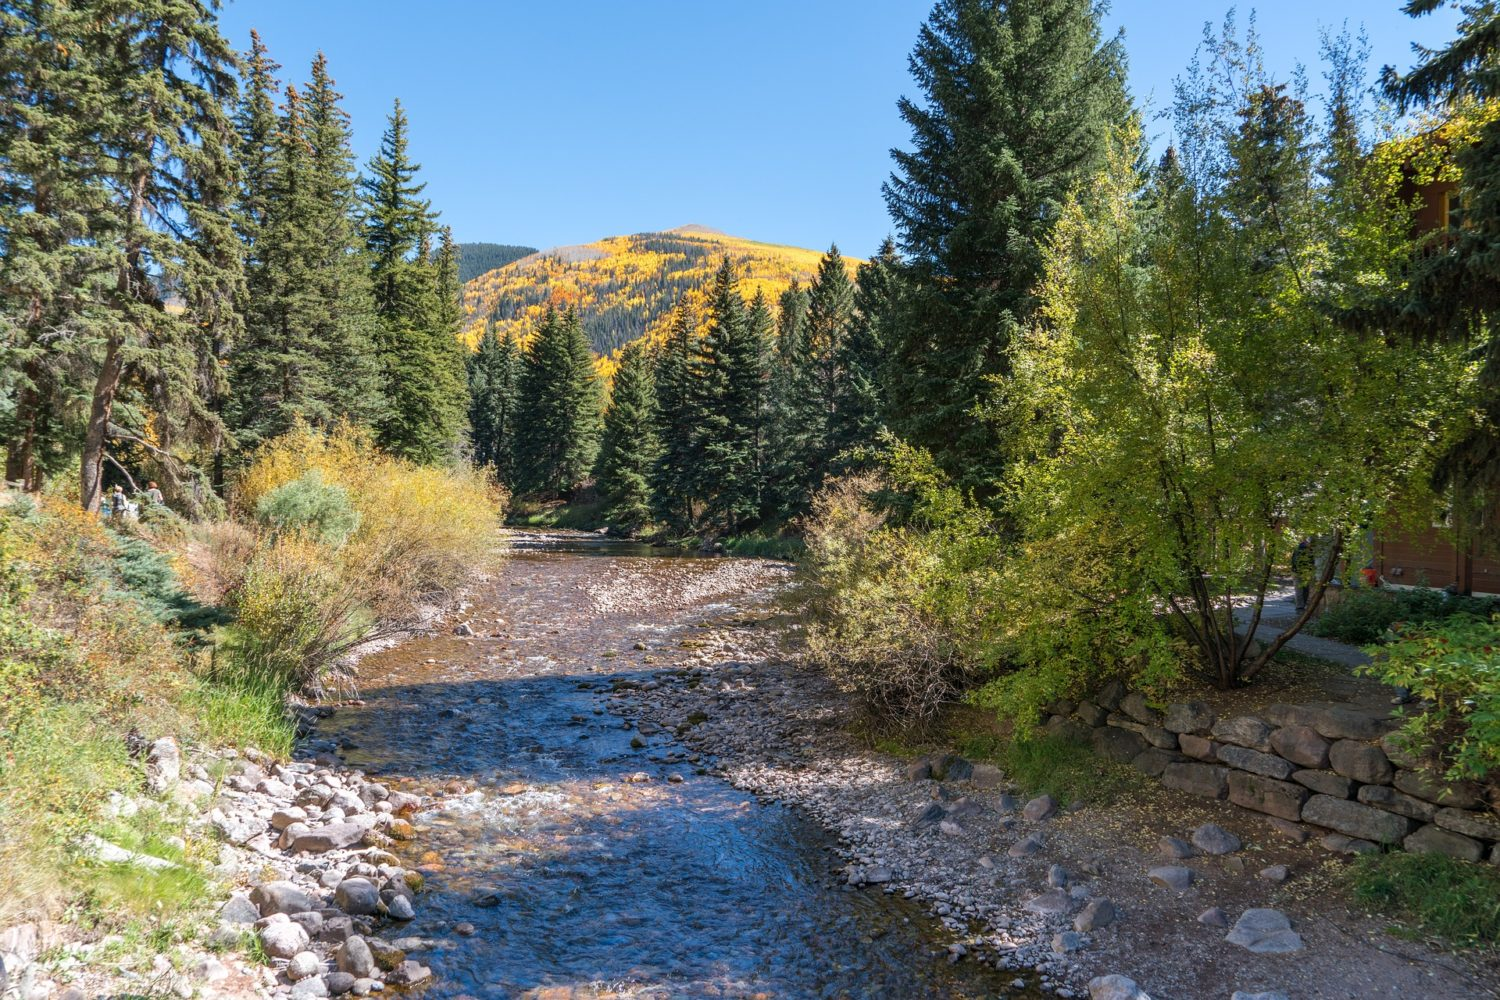 Self guided E-bike tour from Vail to Aspen gives you the best of the Colorado Rocky Mountains